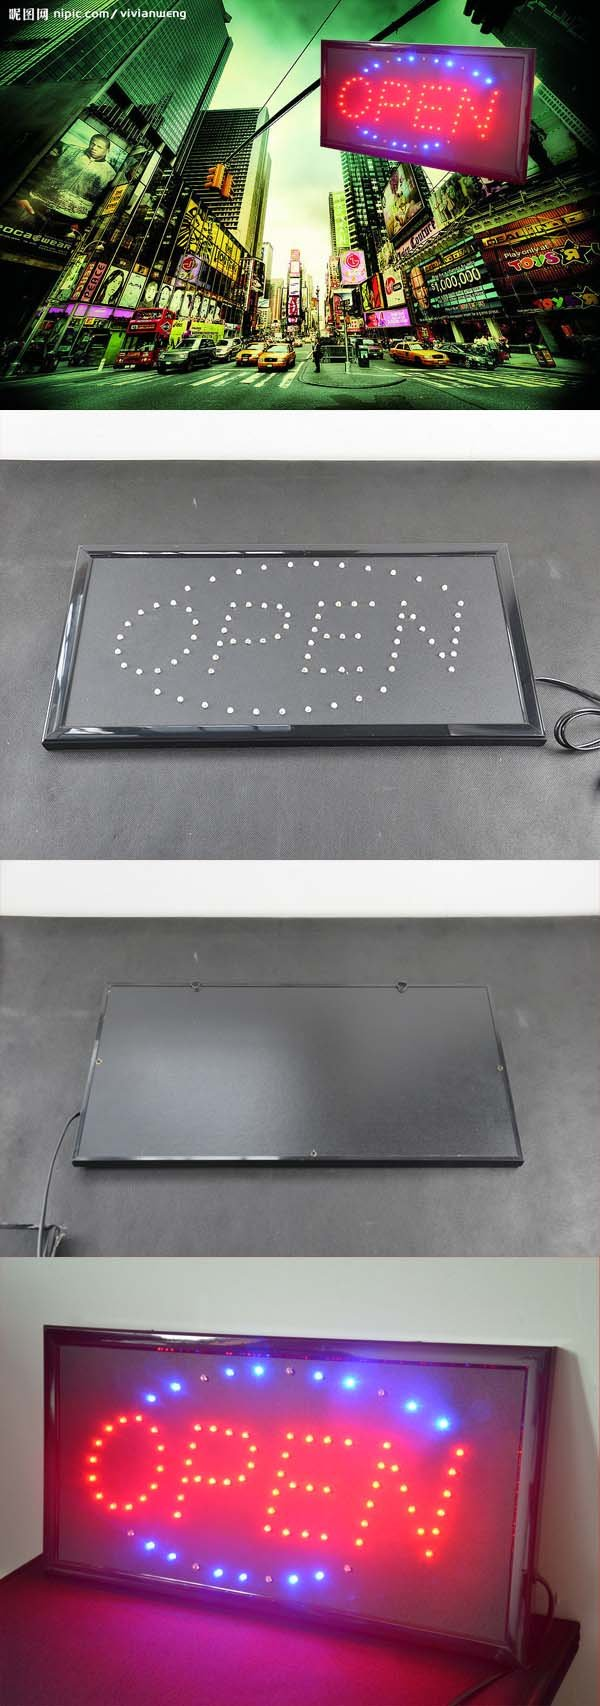 led schild open tradokay. Black Bedroom Furniture Sets. Home Design Ideas